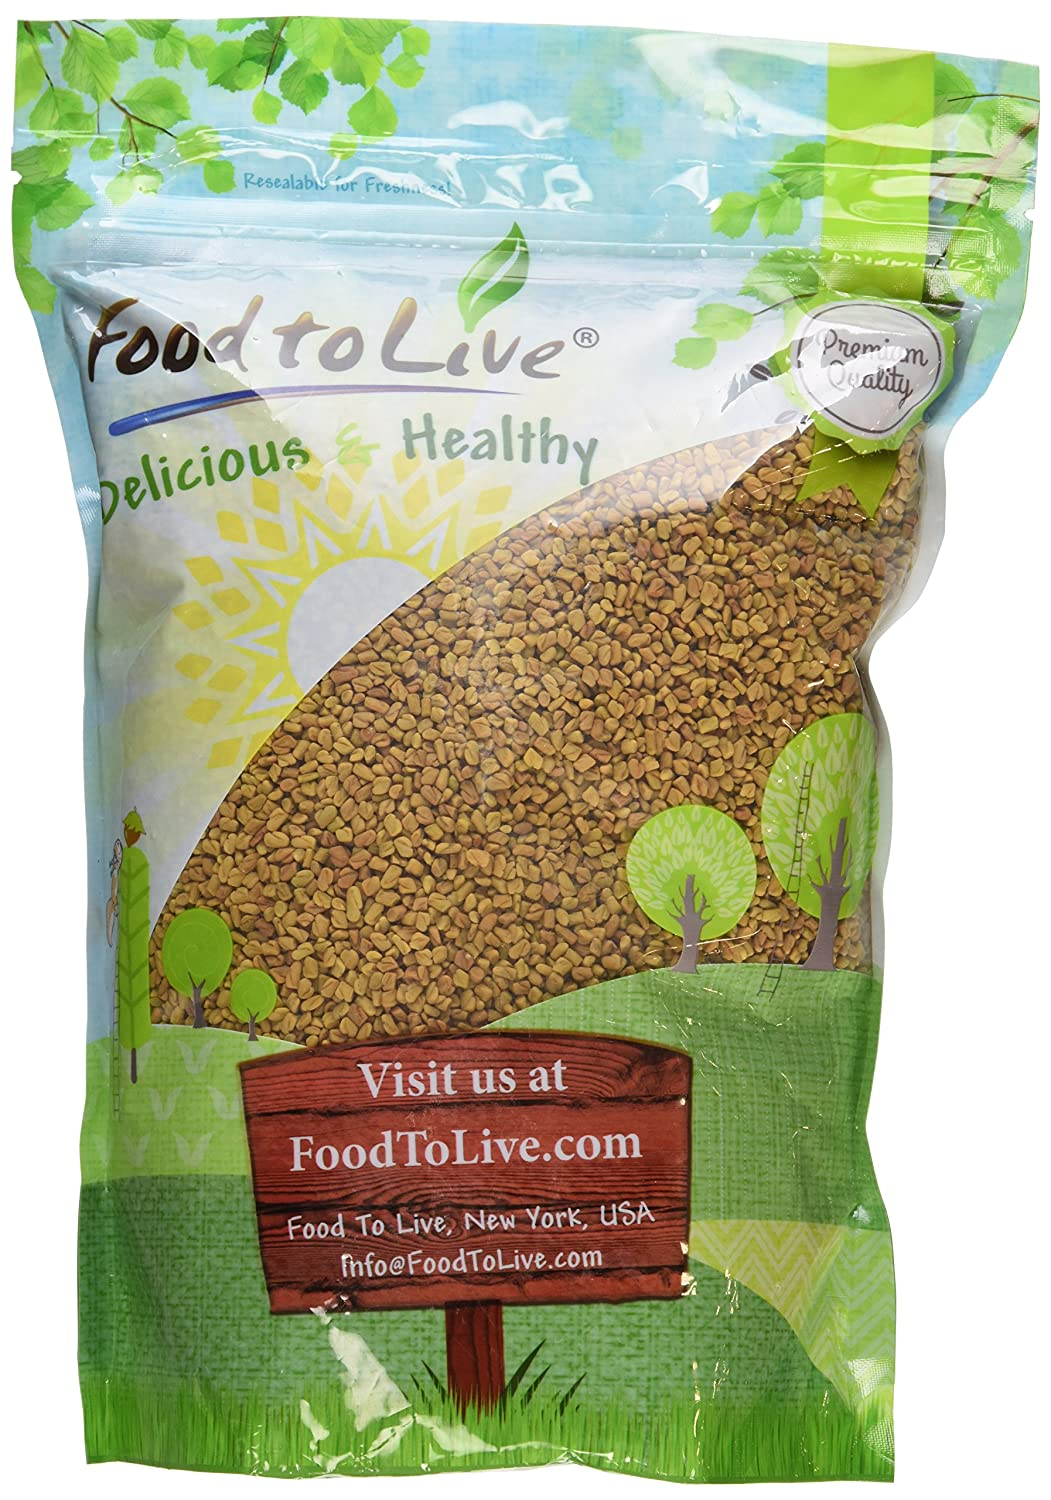 Food to Live Semillas de fenogreco (Methi) (Kosher) - 2.5 Libras: Amazon.es: Alimentación y bebidas